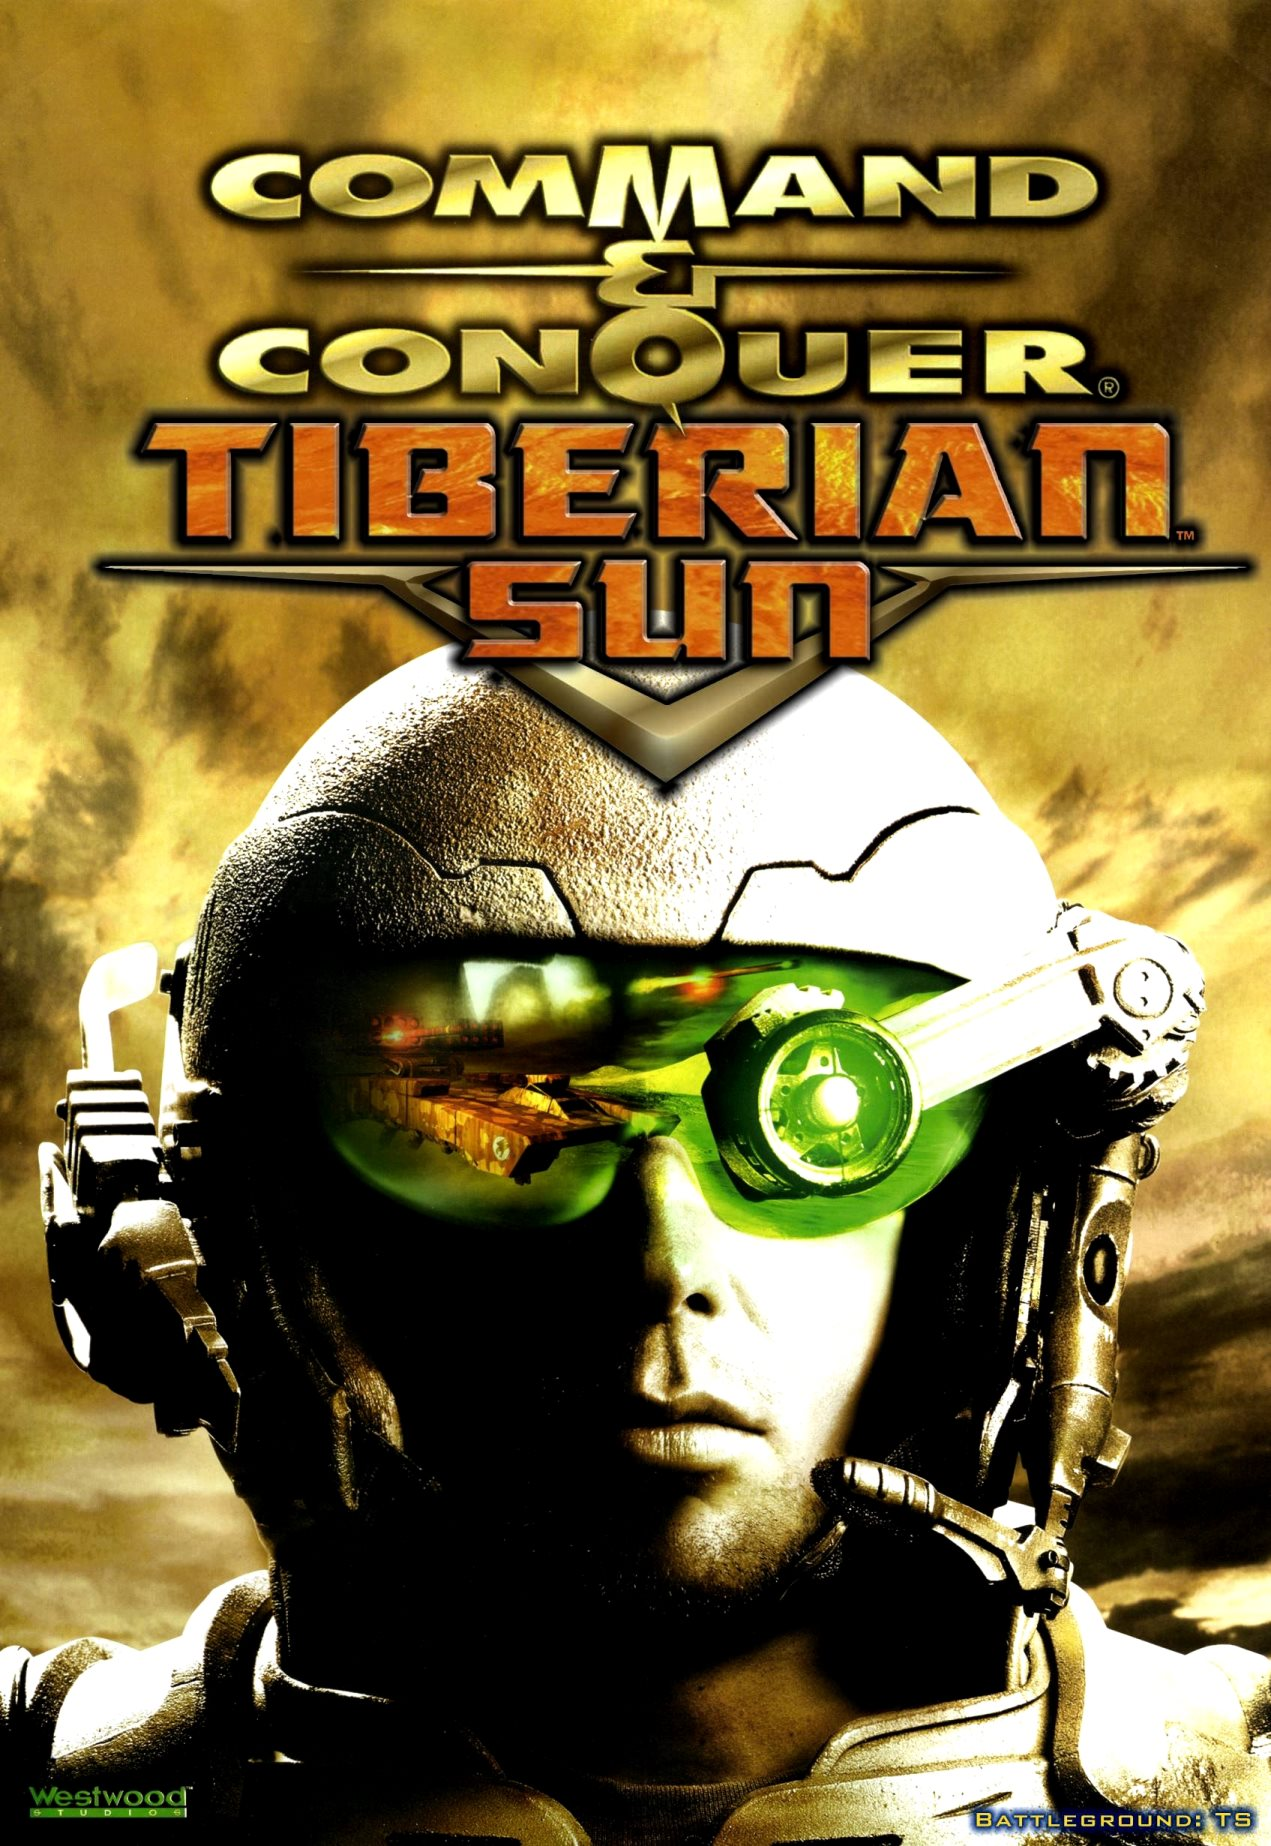 Command and conquer 64 bit